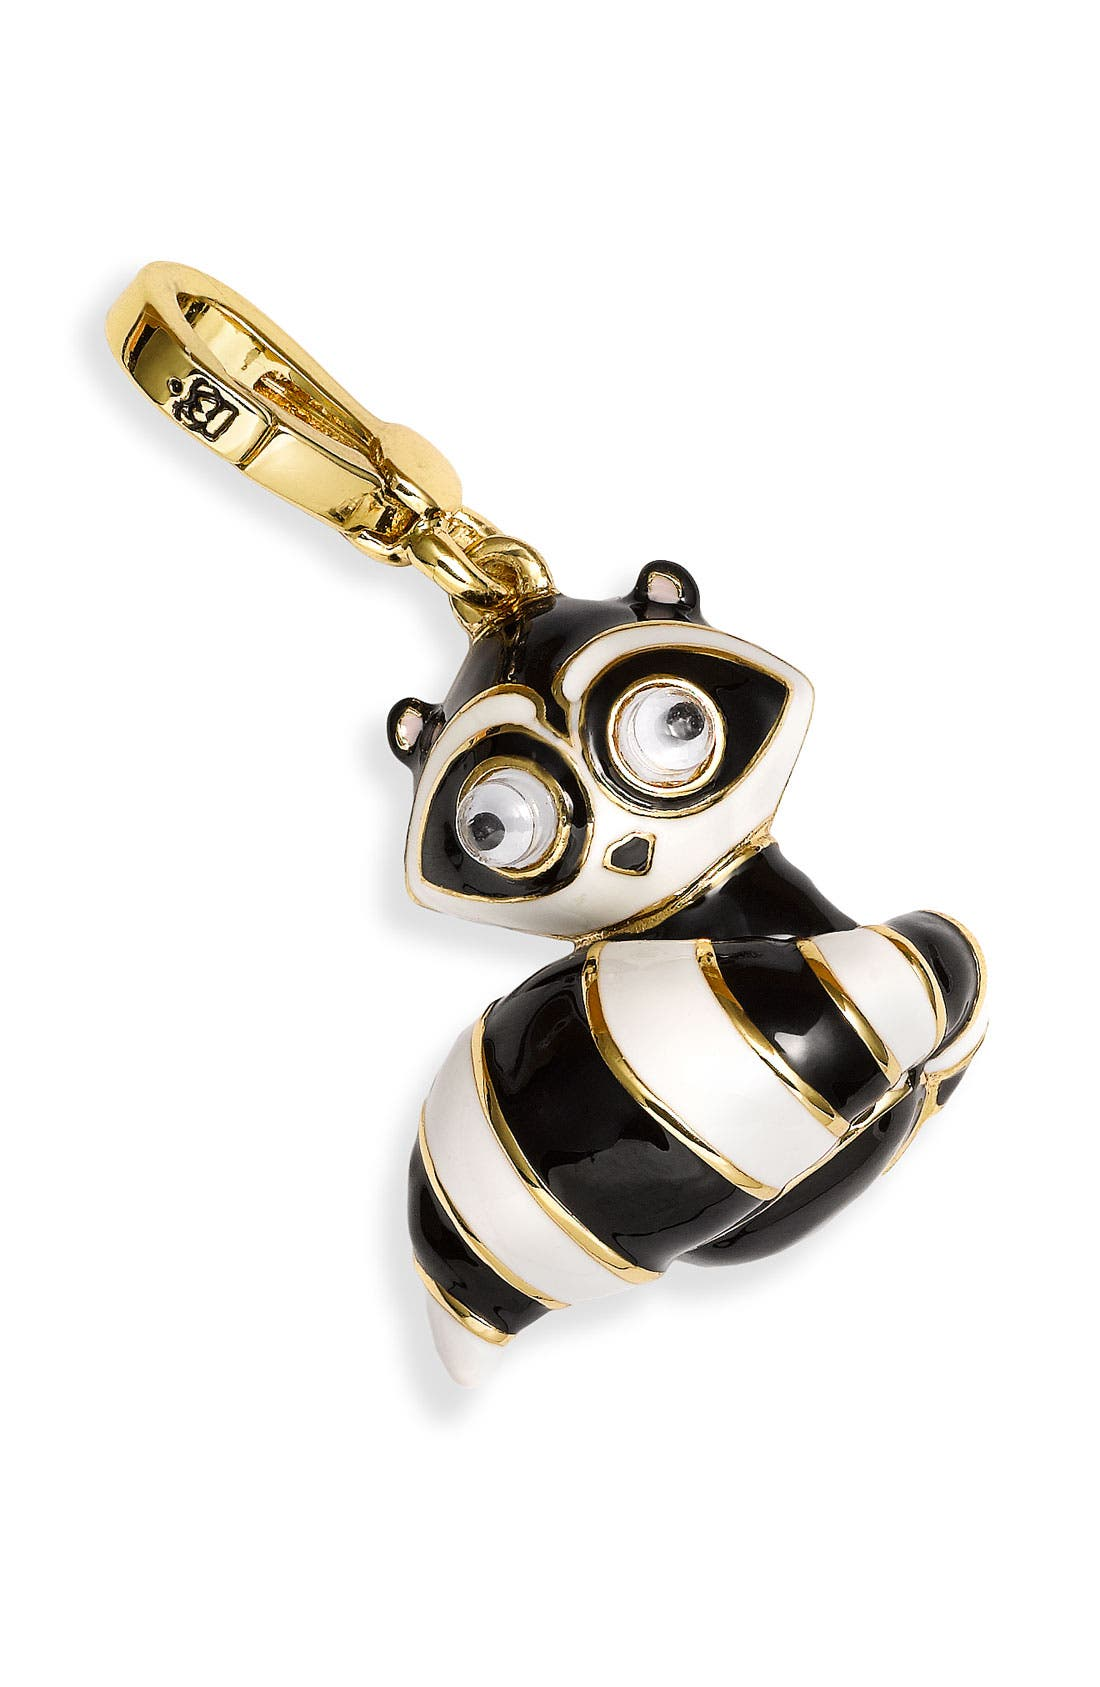 Main Image - Juicy Couture Raccoon Charm